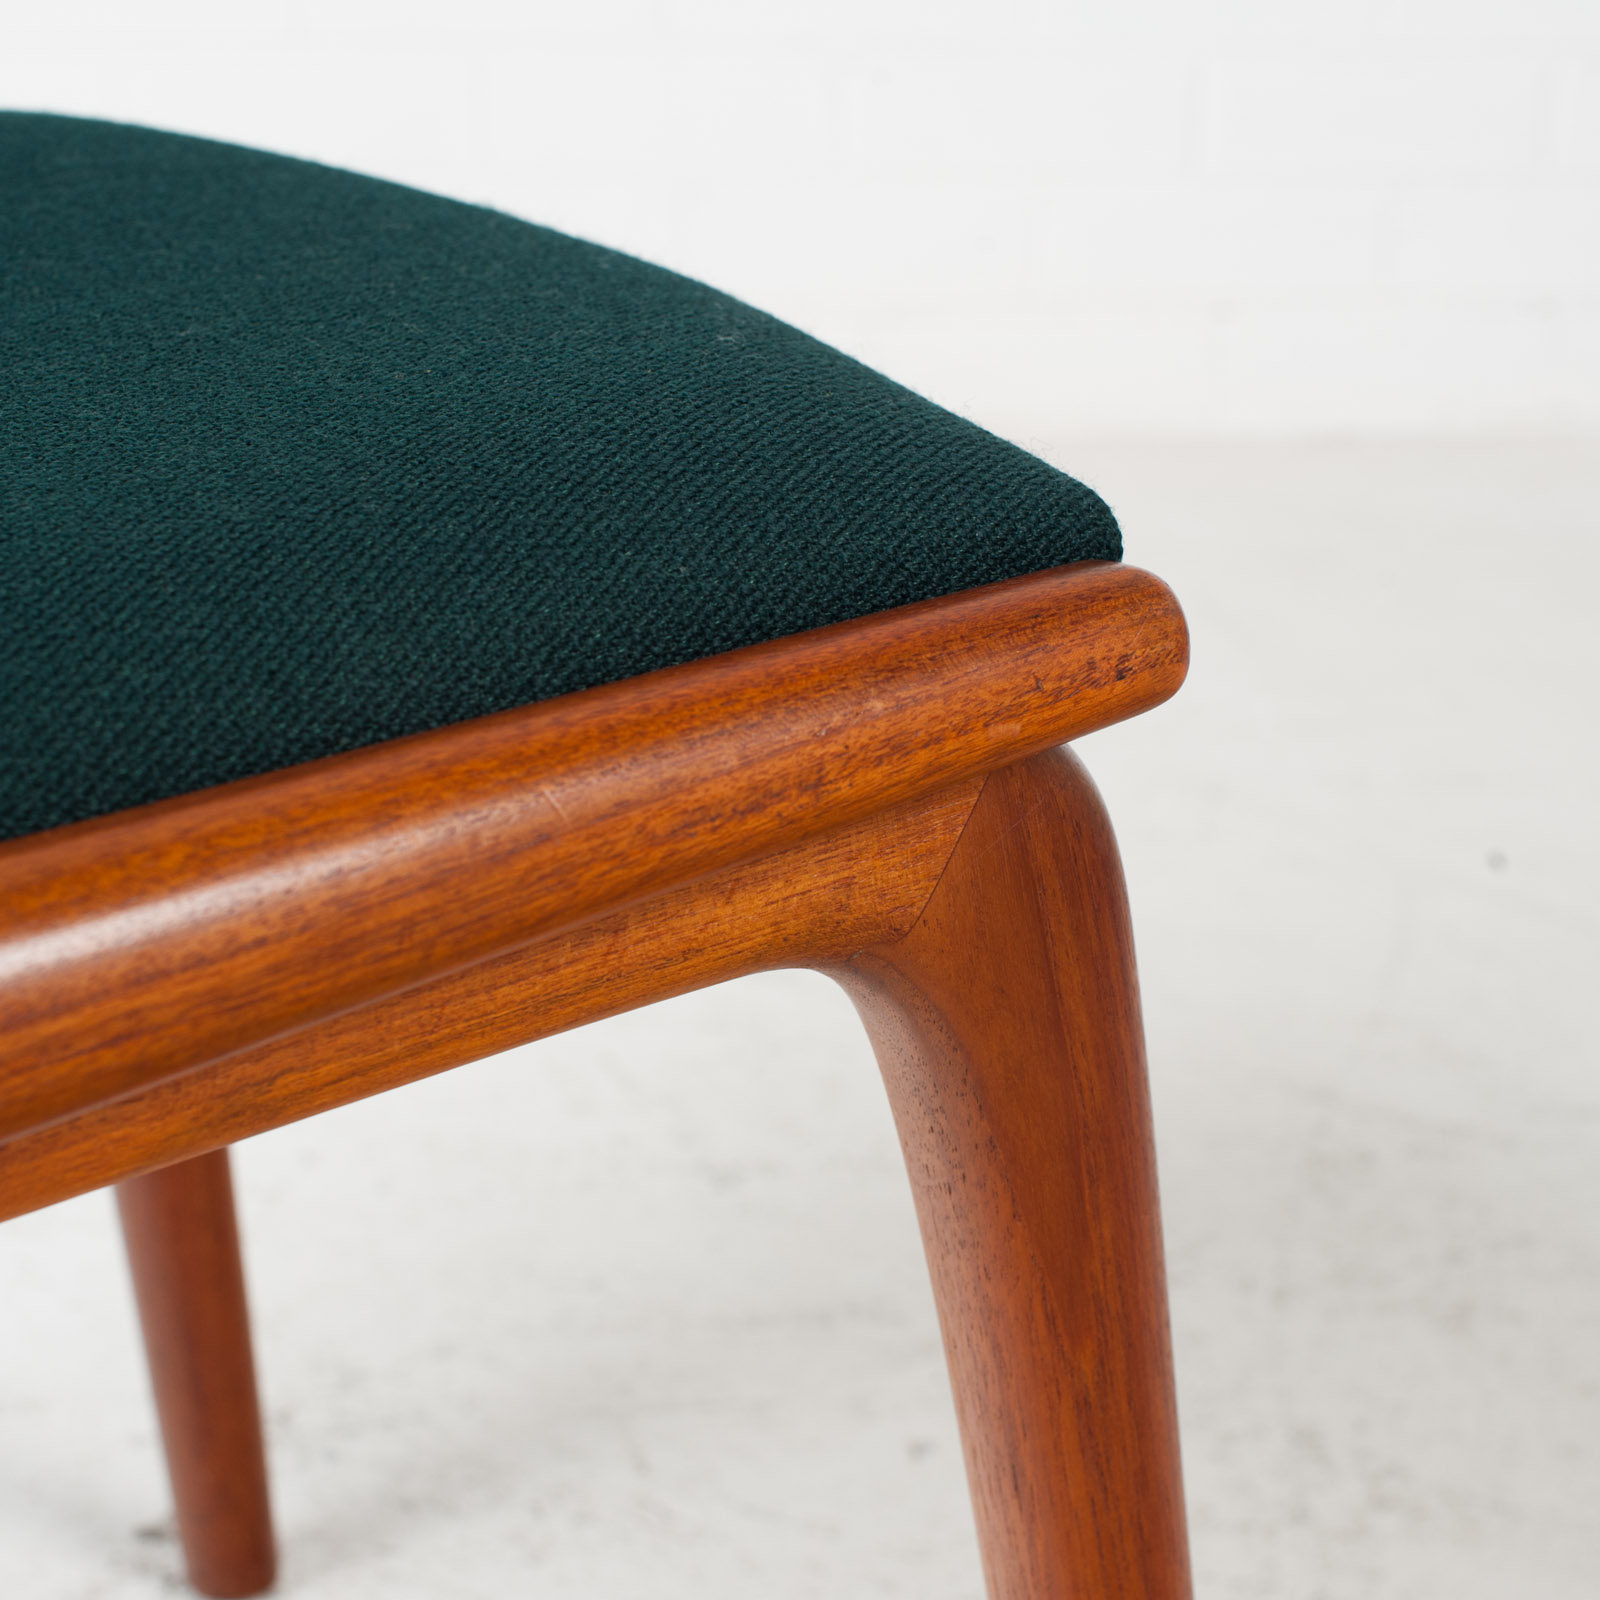 Set Of 6 Model 370 'boomerang' Dining Chair By Alfred Christensen In Teak For Slagelse Mobelfabrik 1950s Denmark 09